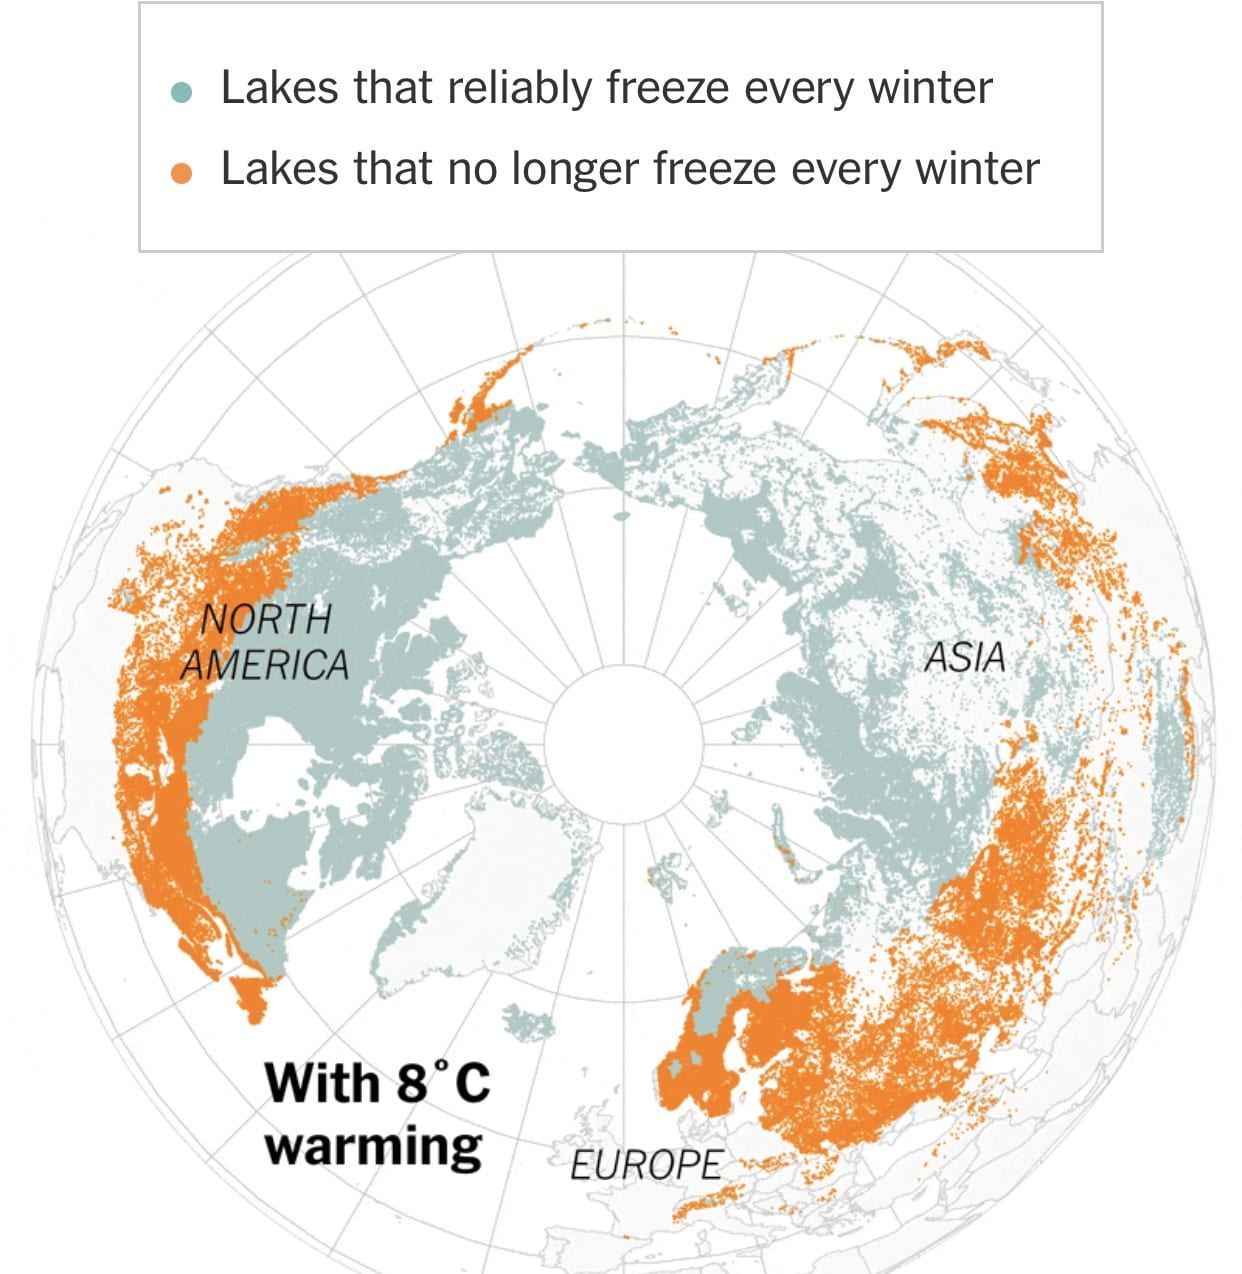 Climate Change Could Leave Thousands of Lakes Ice-Free #Sustainable system